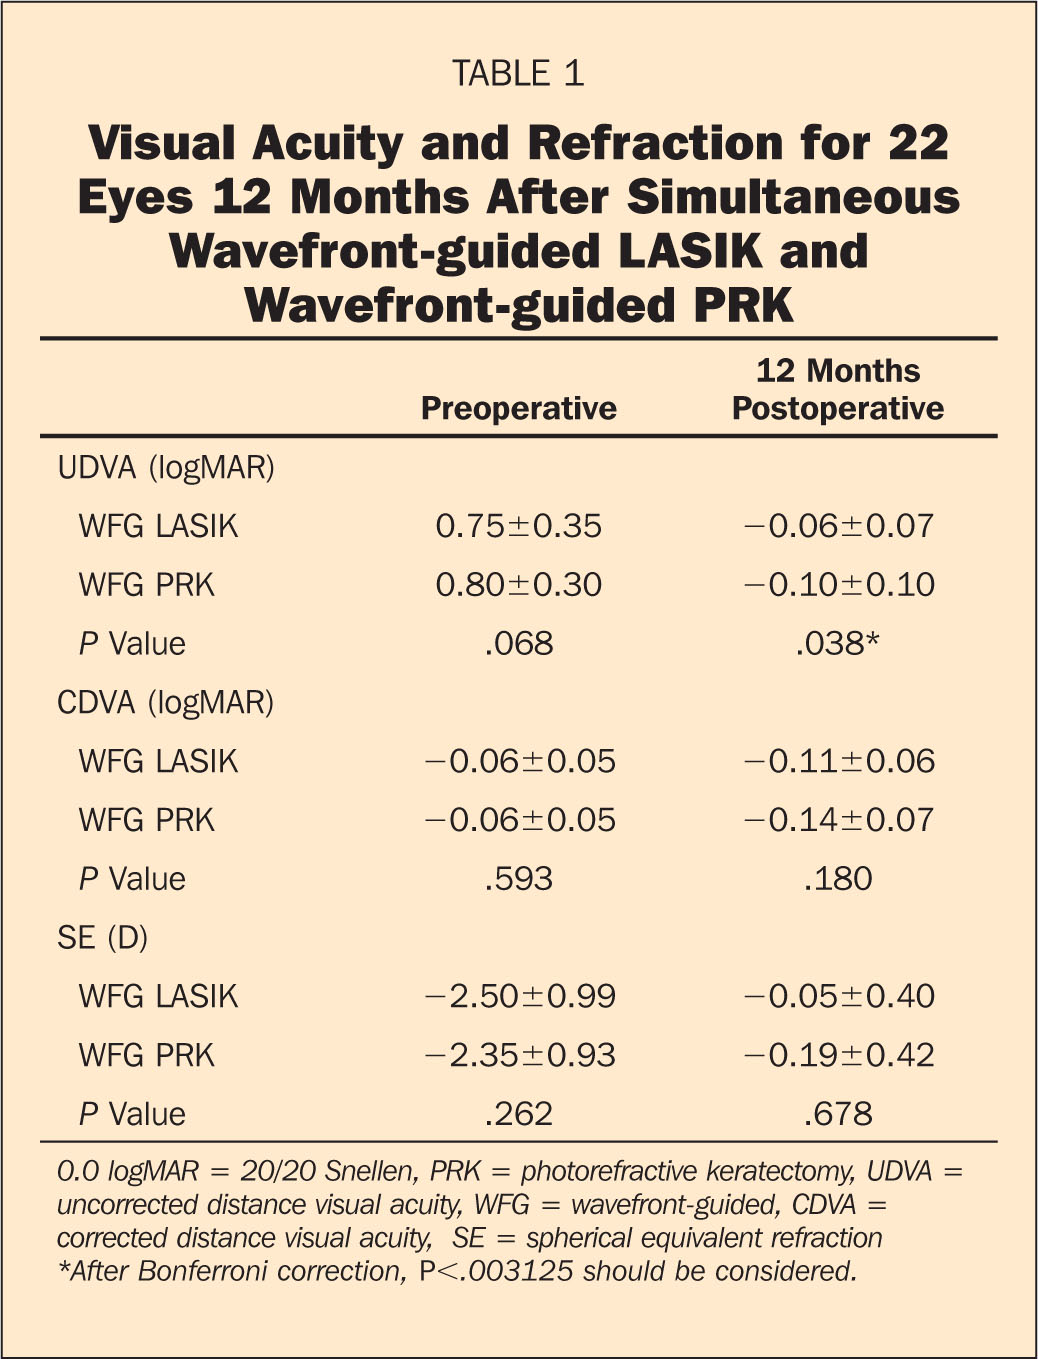 Visual Acuity and Refraction for 22 Eyes 12 Months After Simultaneous Wavefront-Guided LASIK and Wavefront-Guided PRK